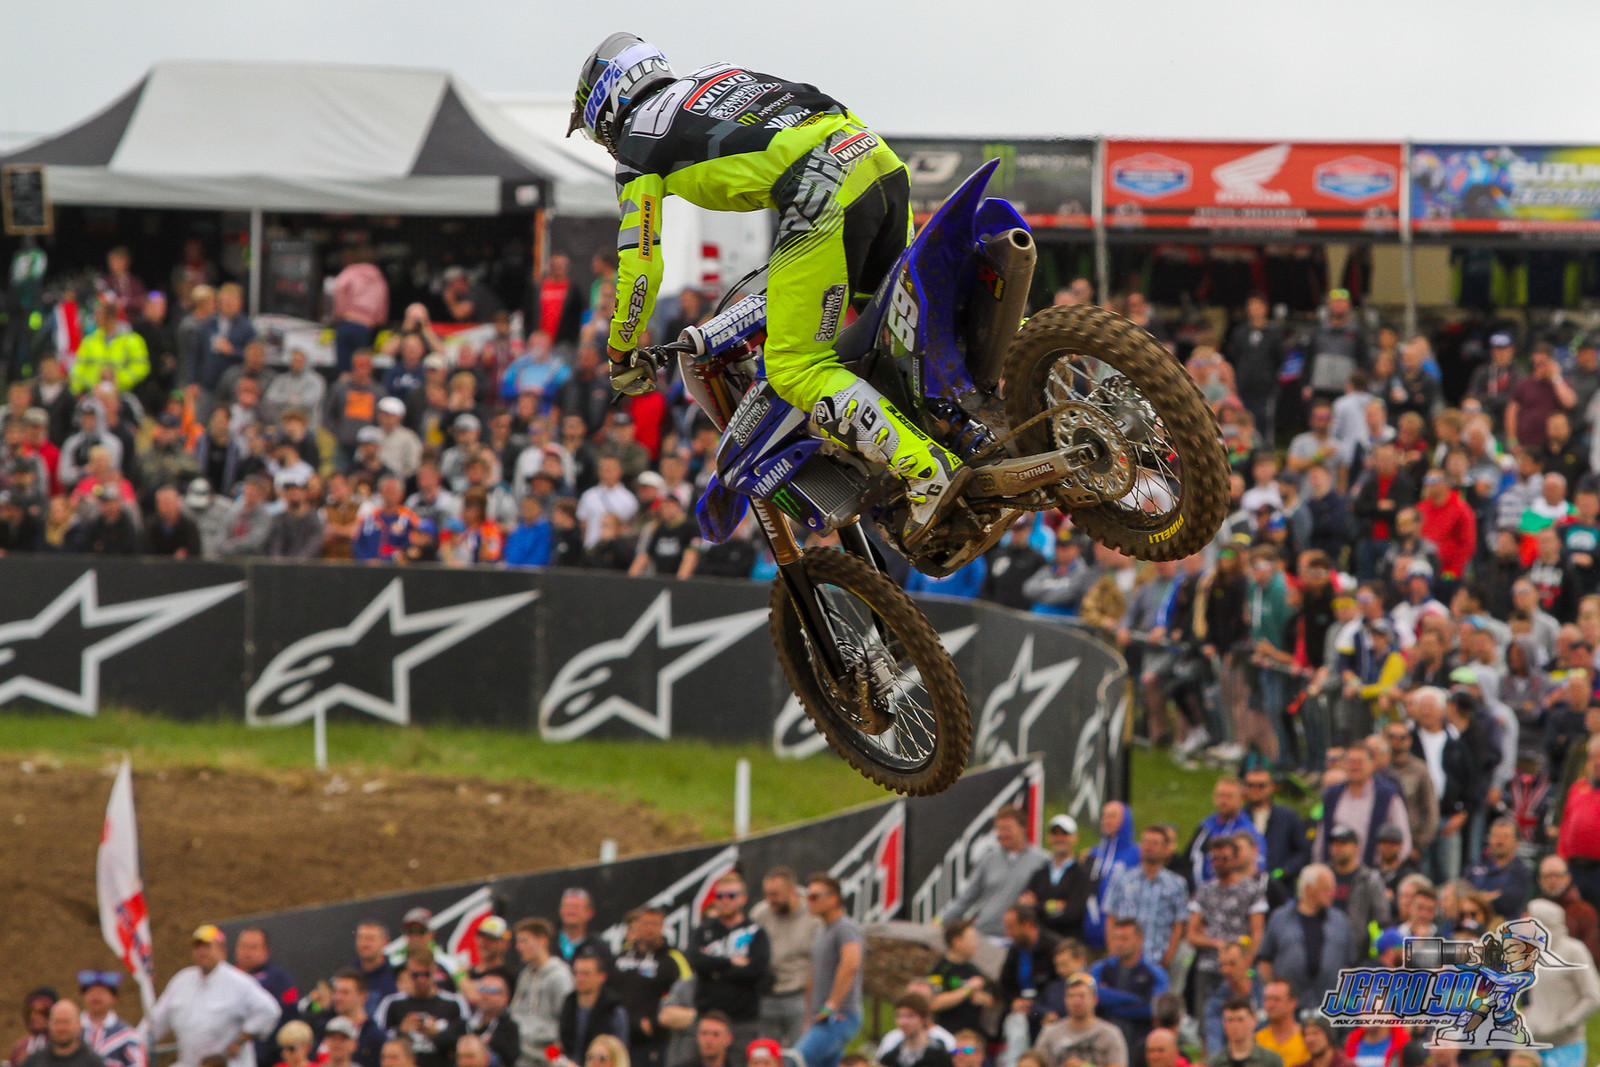 Aleksandr Tonkov - Photo Gallery: MXGP of Great Britain - Motocross Pictures - Vital MX